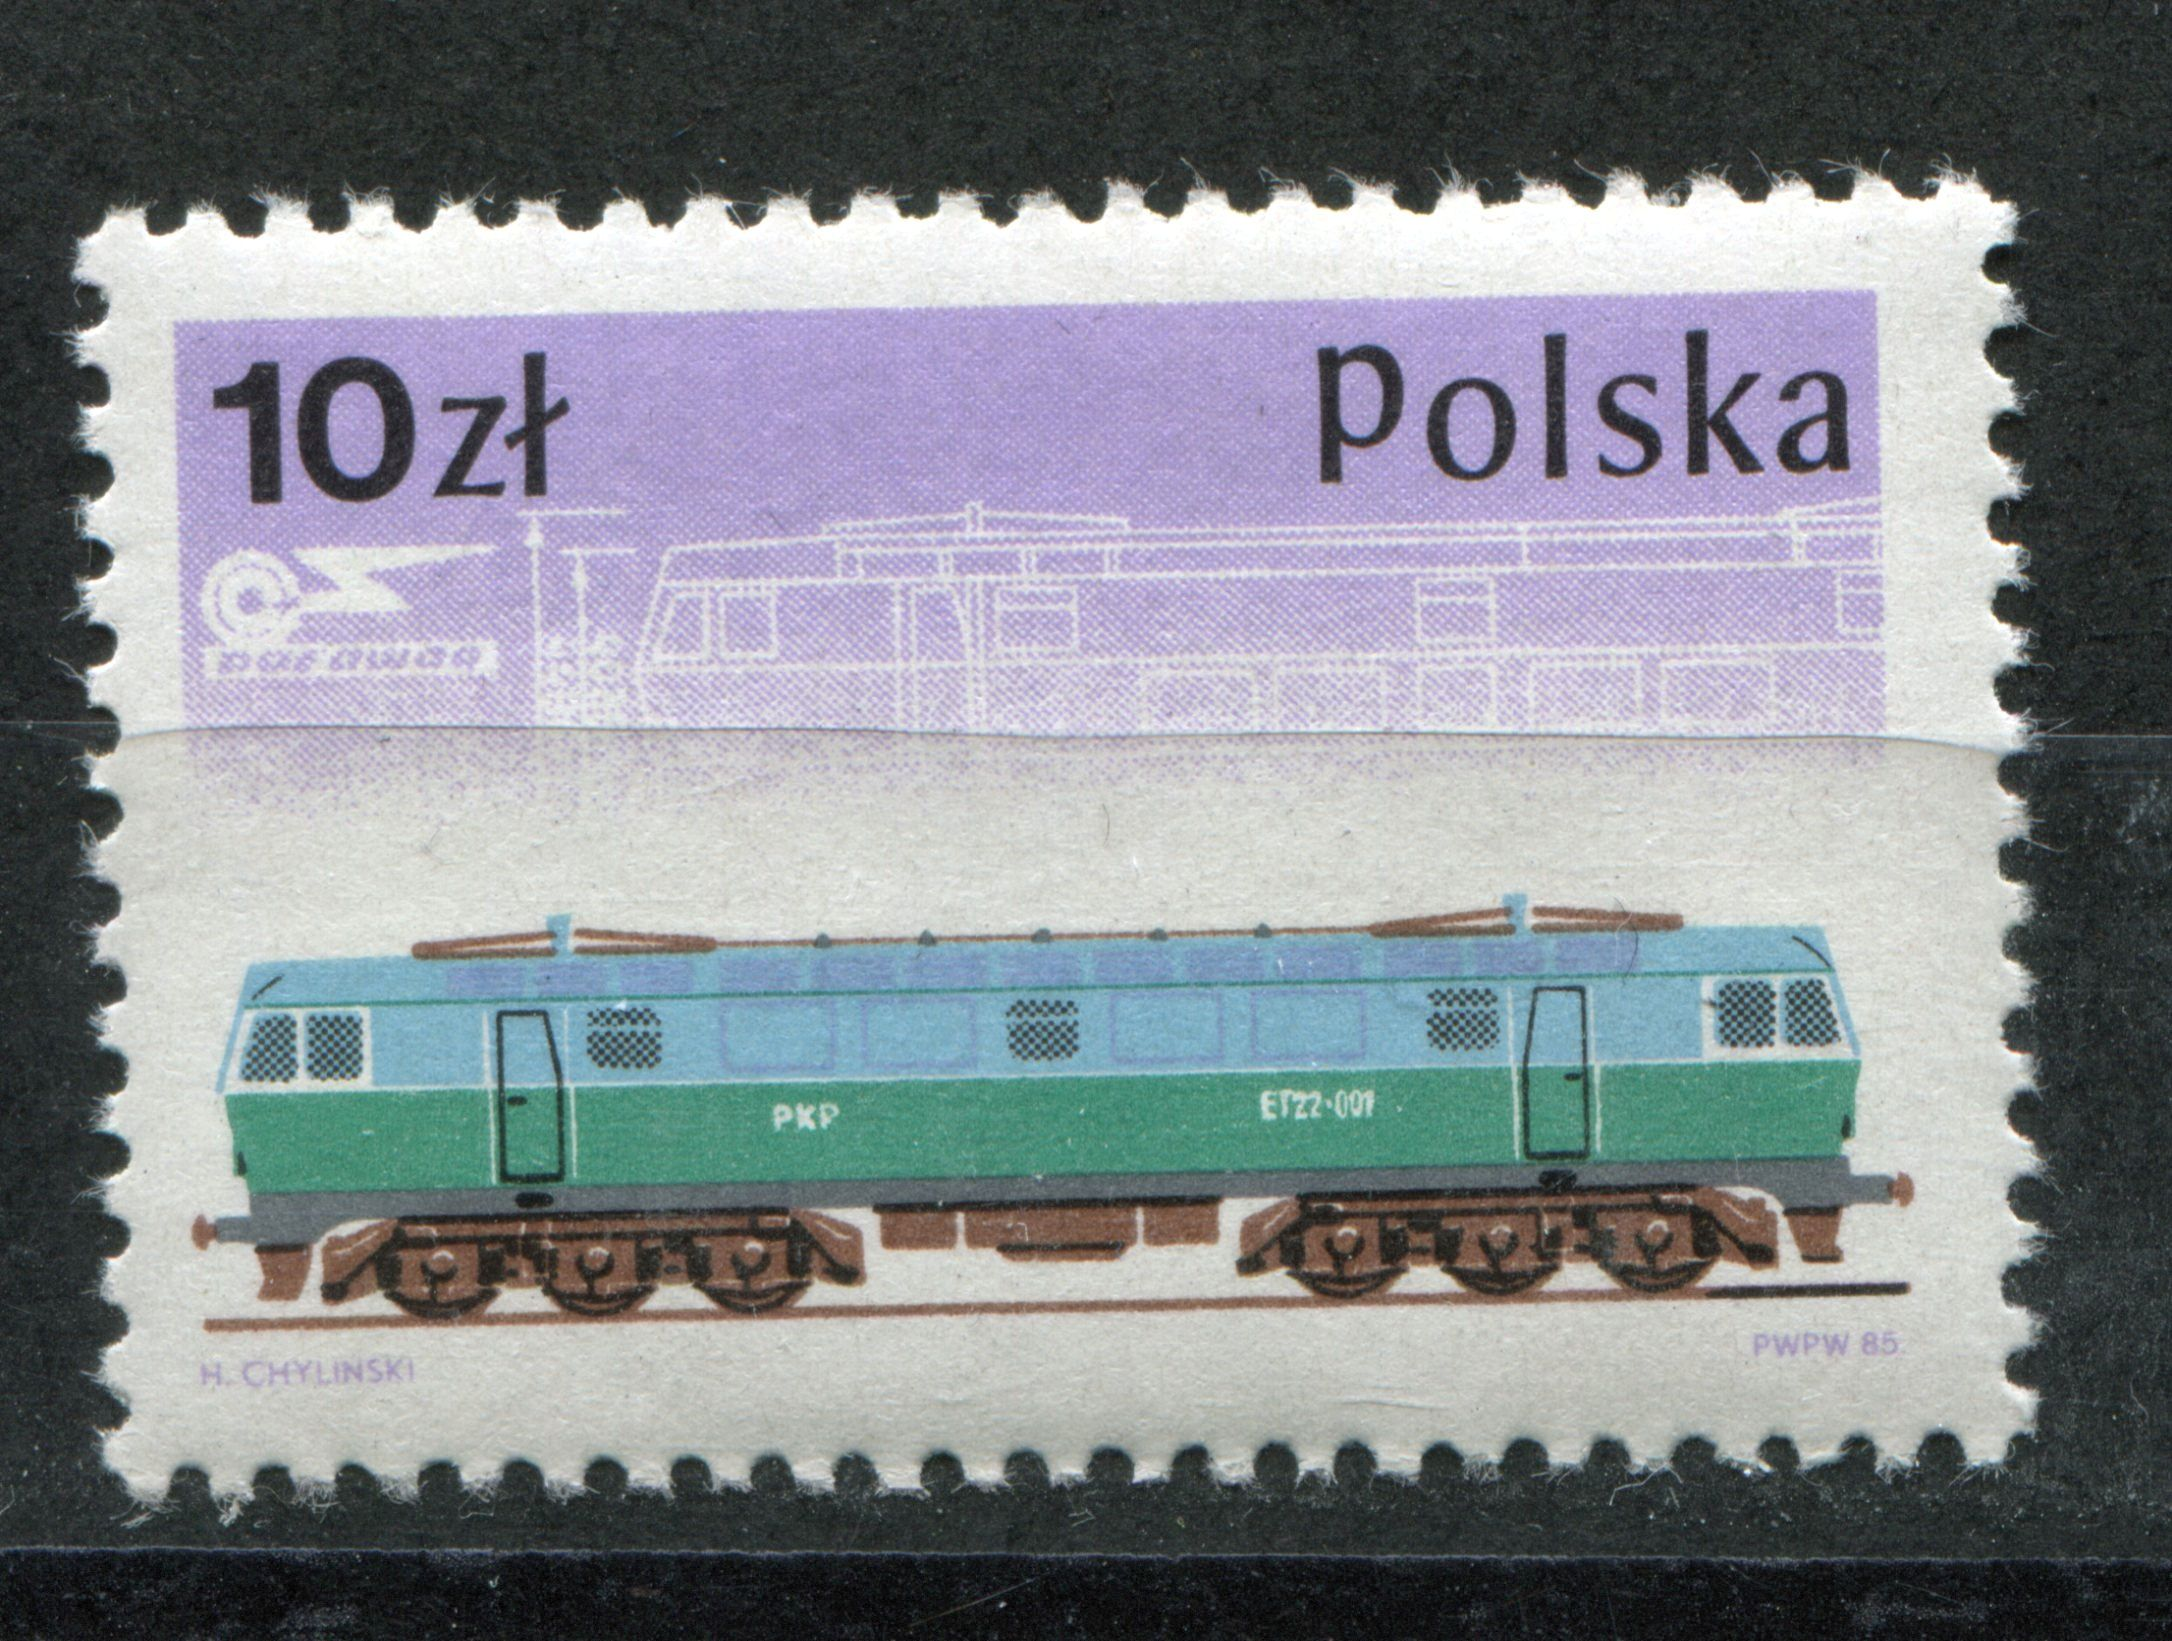 https://pl.wikipedia.org/wiki/Pafawag_201E   POSTAGE STAMPS ...